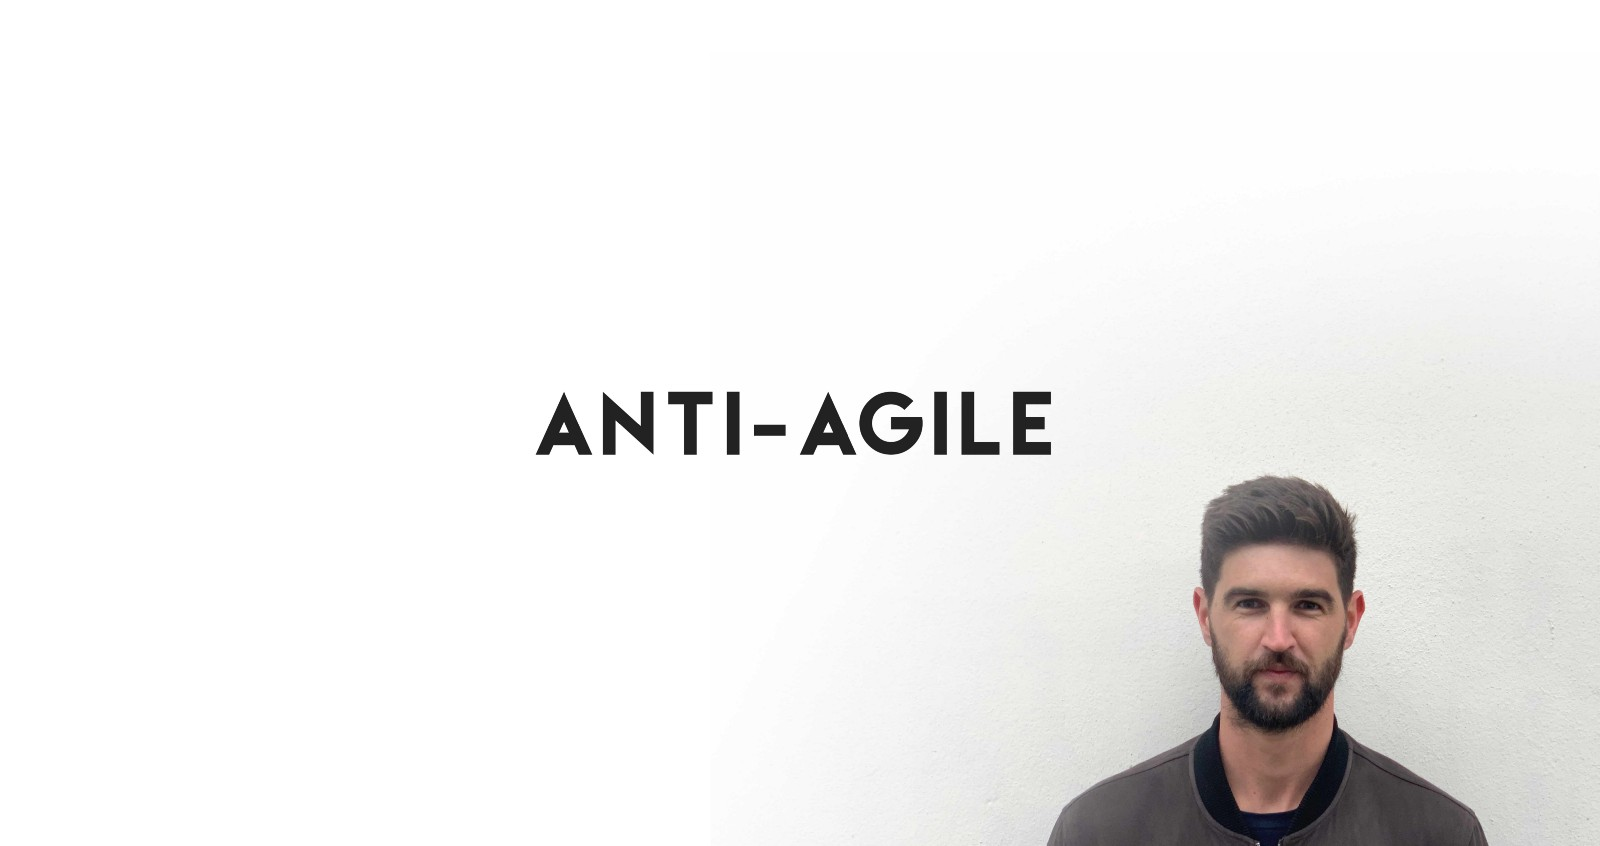 A critique of Agile theory—and why Agile rarely works in practice